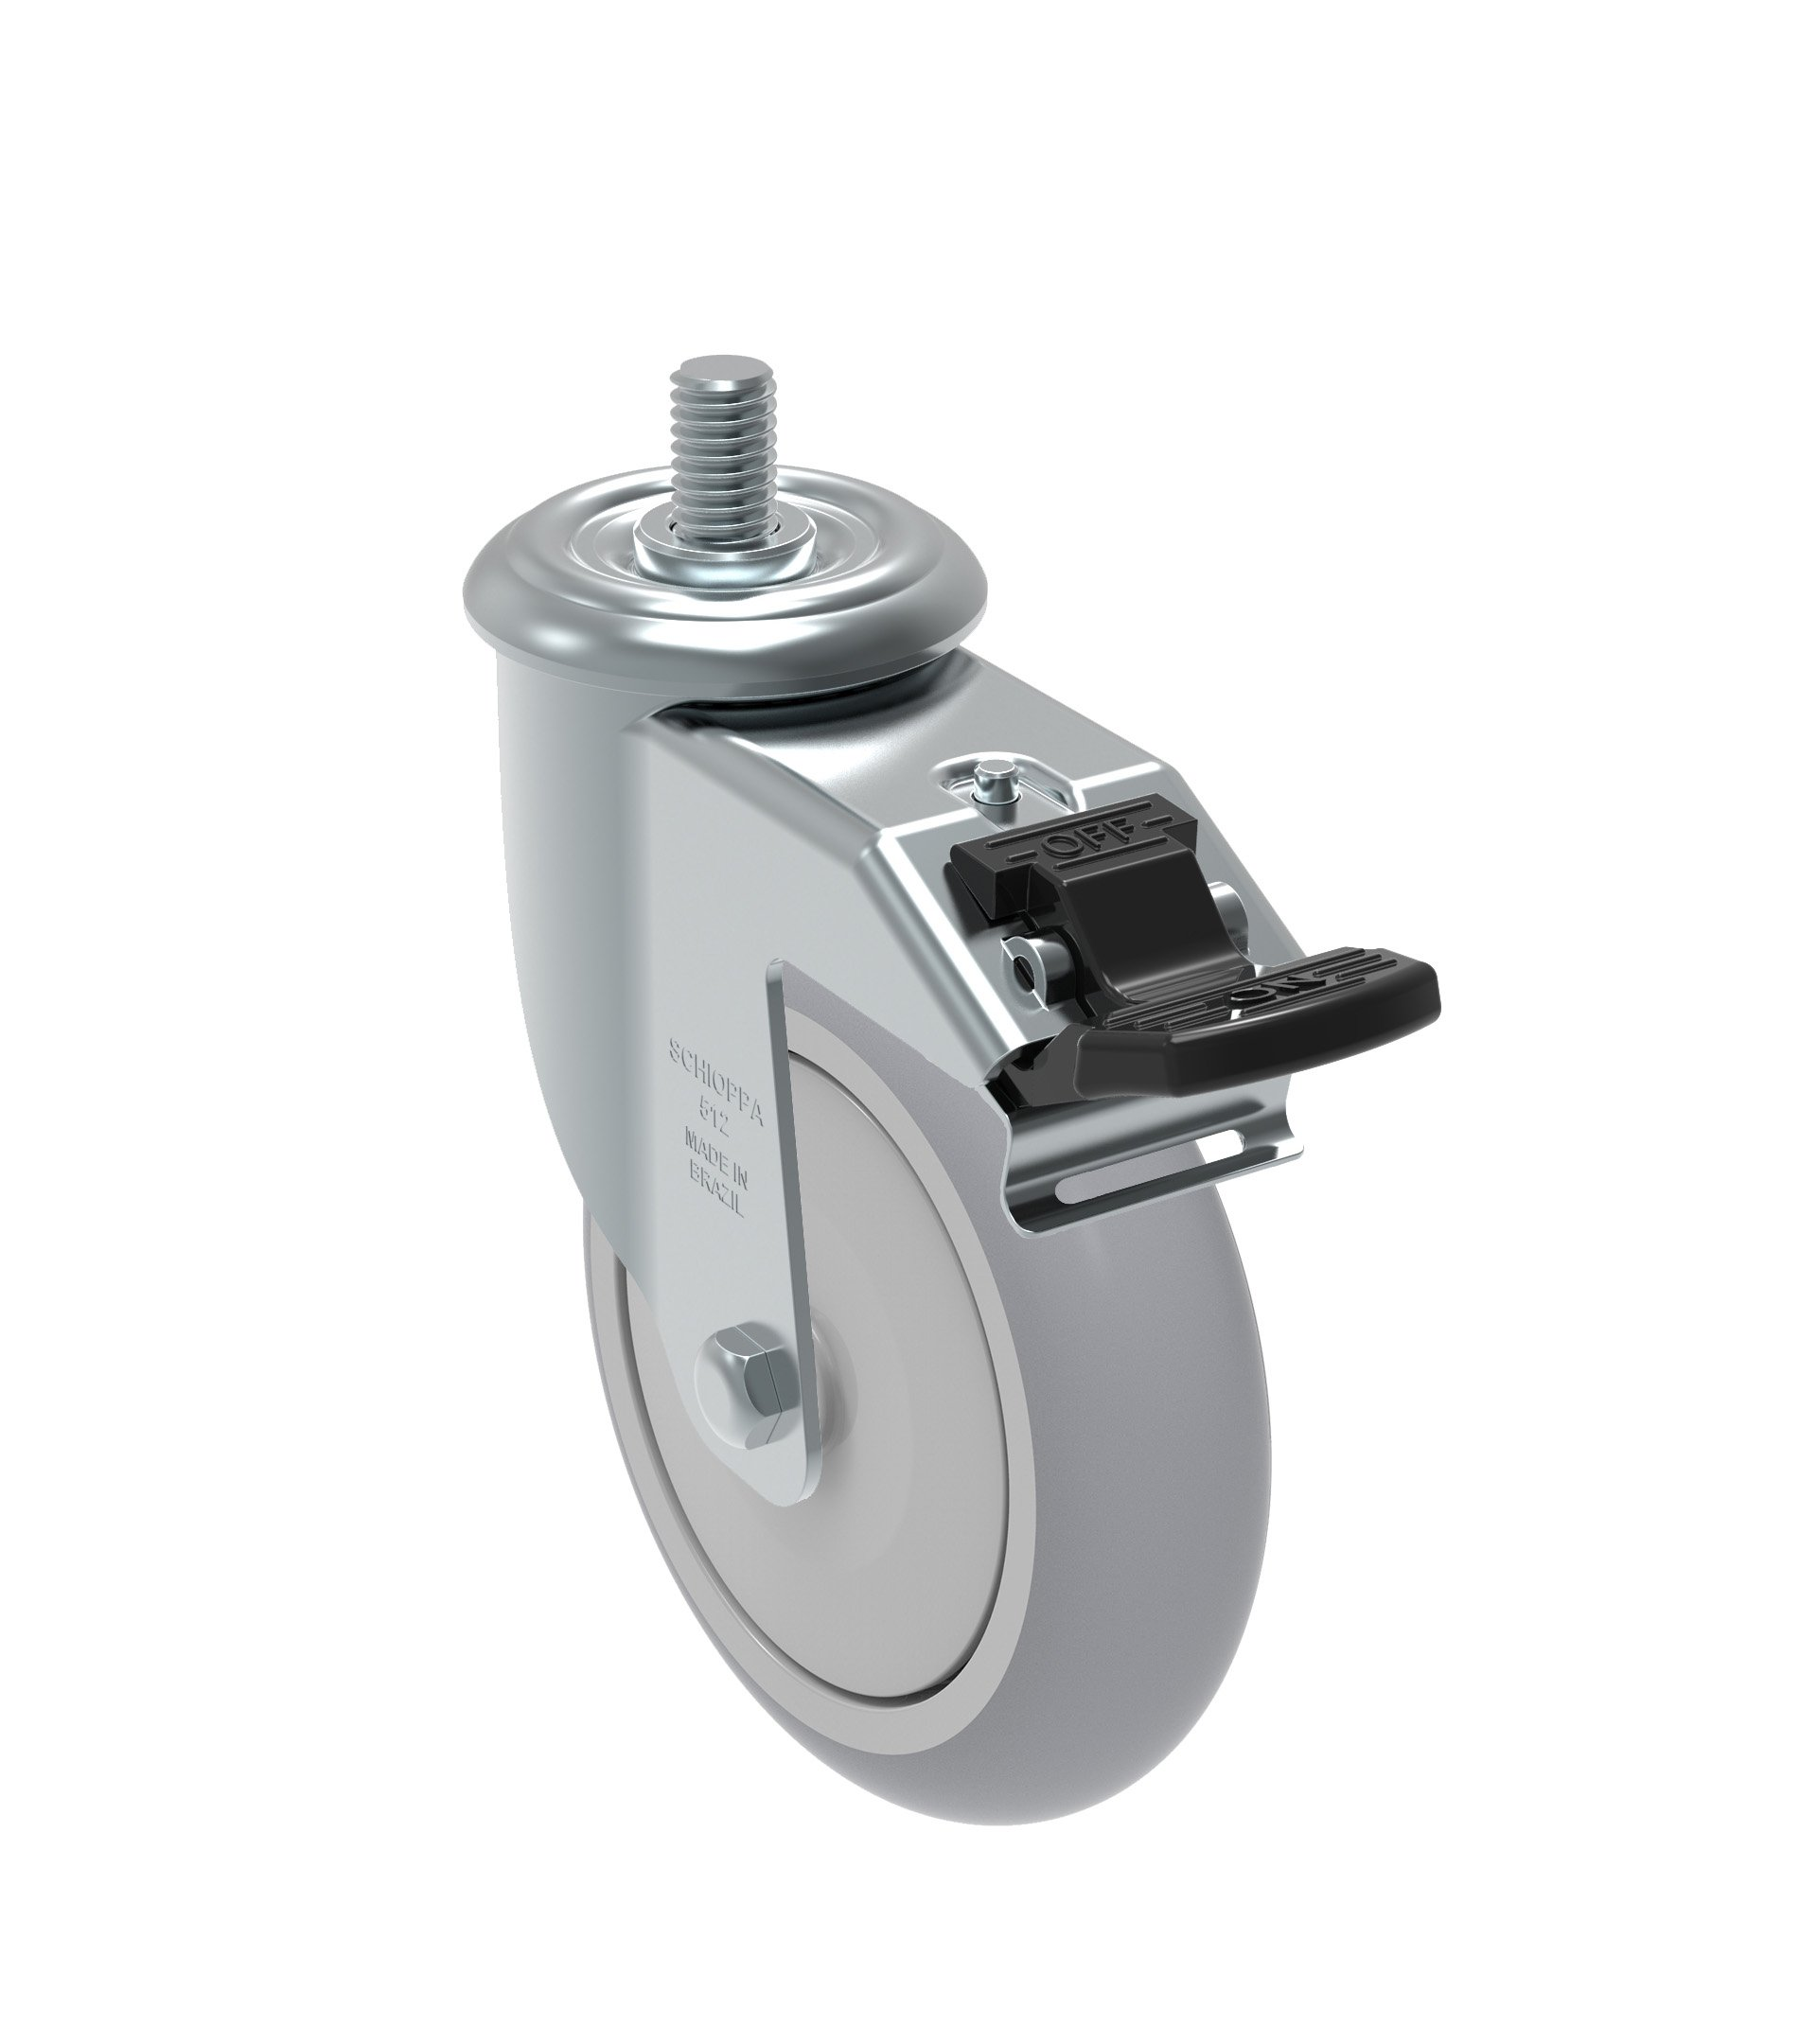 Schioppa GLEED 512 NPE G L12 Series 5'' x 1-1/4'' Diameter Swivel Caster with Total Lock Brake, Non-Marking Polypropylene Precision Ball Bearing Wheel, 3/8'' Diameter x 1'' Length Threaded Stem, 325 lb by Schioppa (Image #1)